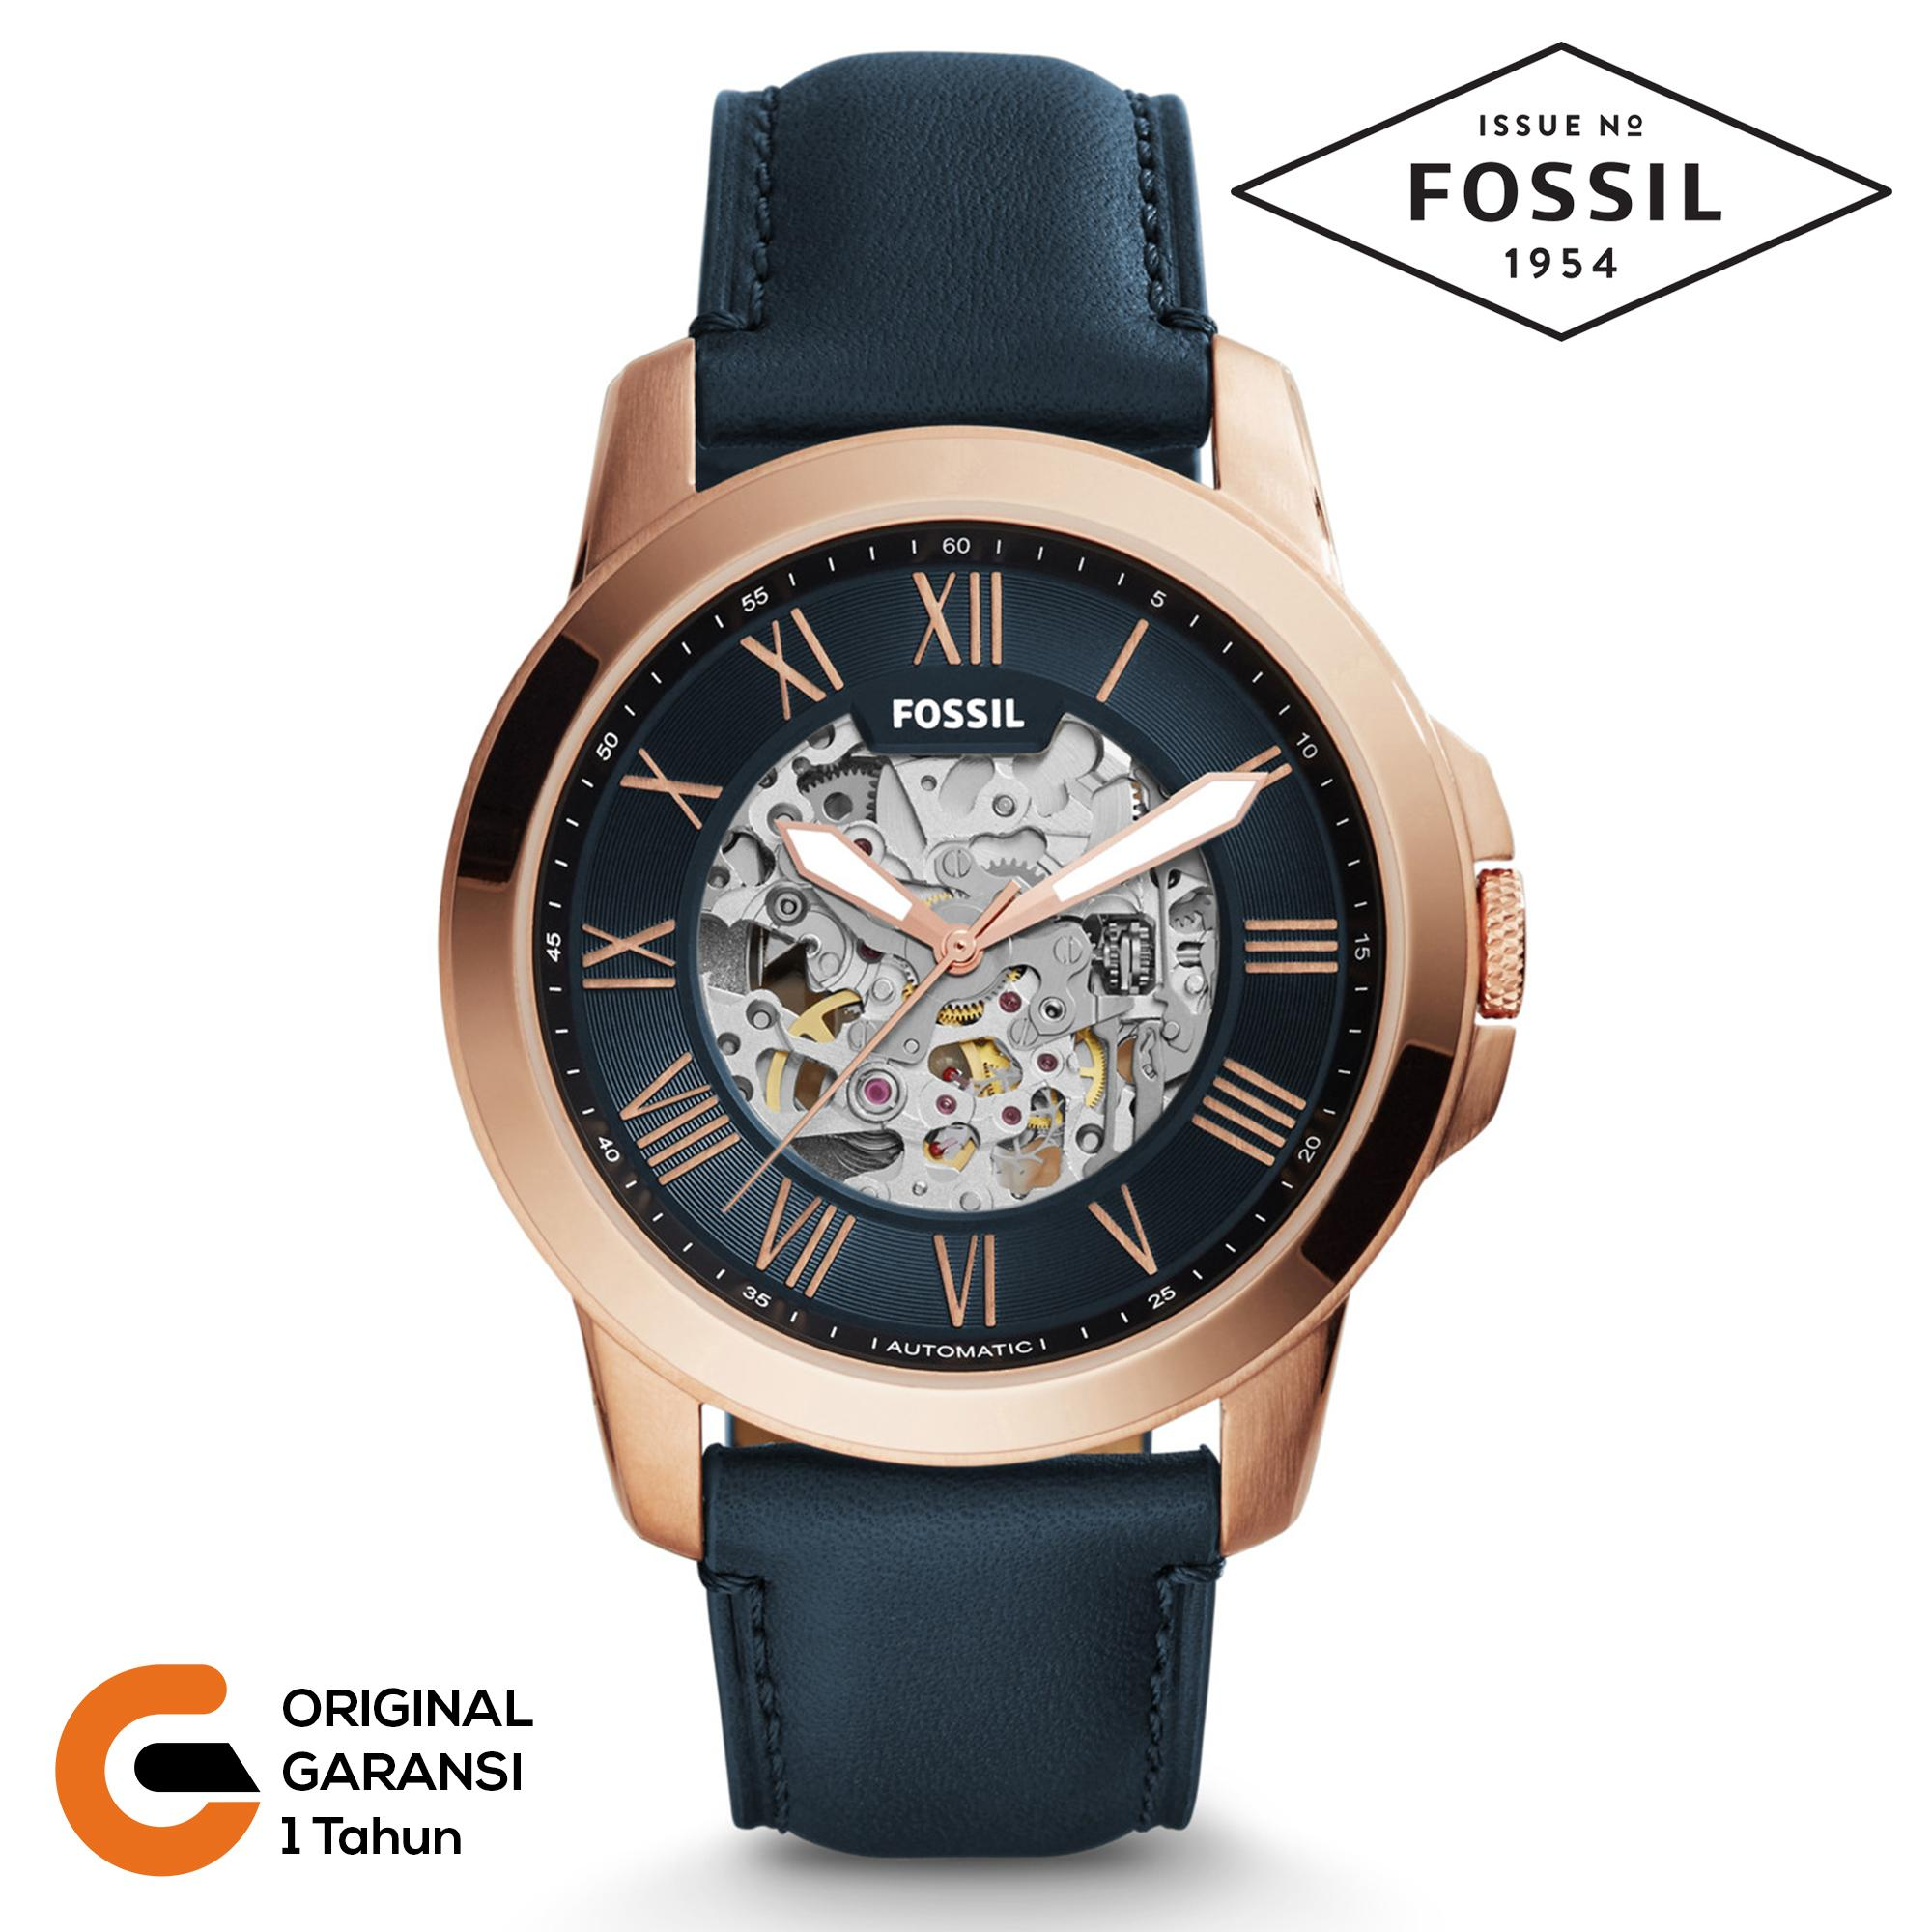 Fossil Jam Tangan Pria Fossil Grant Automatic Tali kulit Leather / Rantai Logam Stainless Steel Mechanical